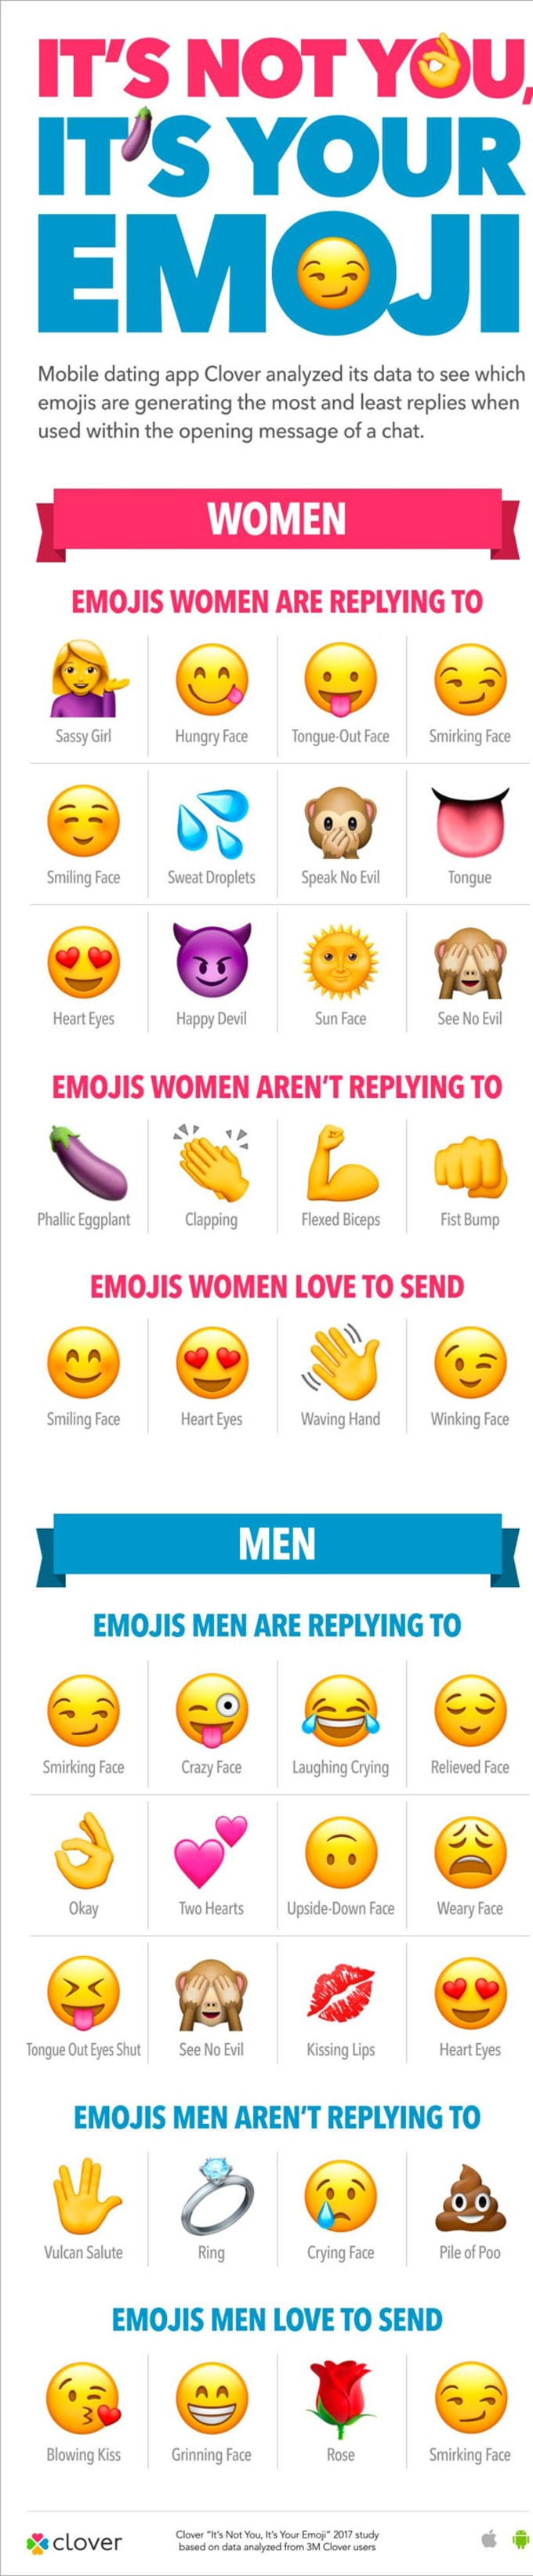 A helpful graph to breakdown which emojis work on dating apps, and which don't.